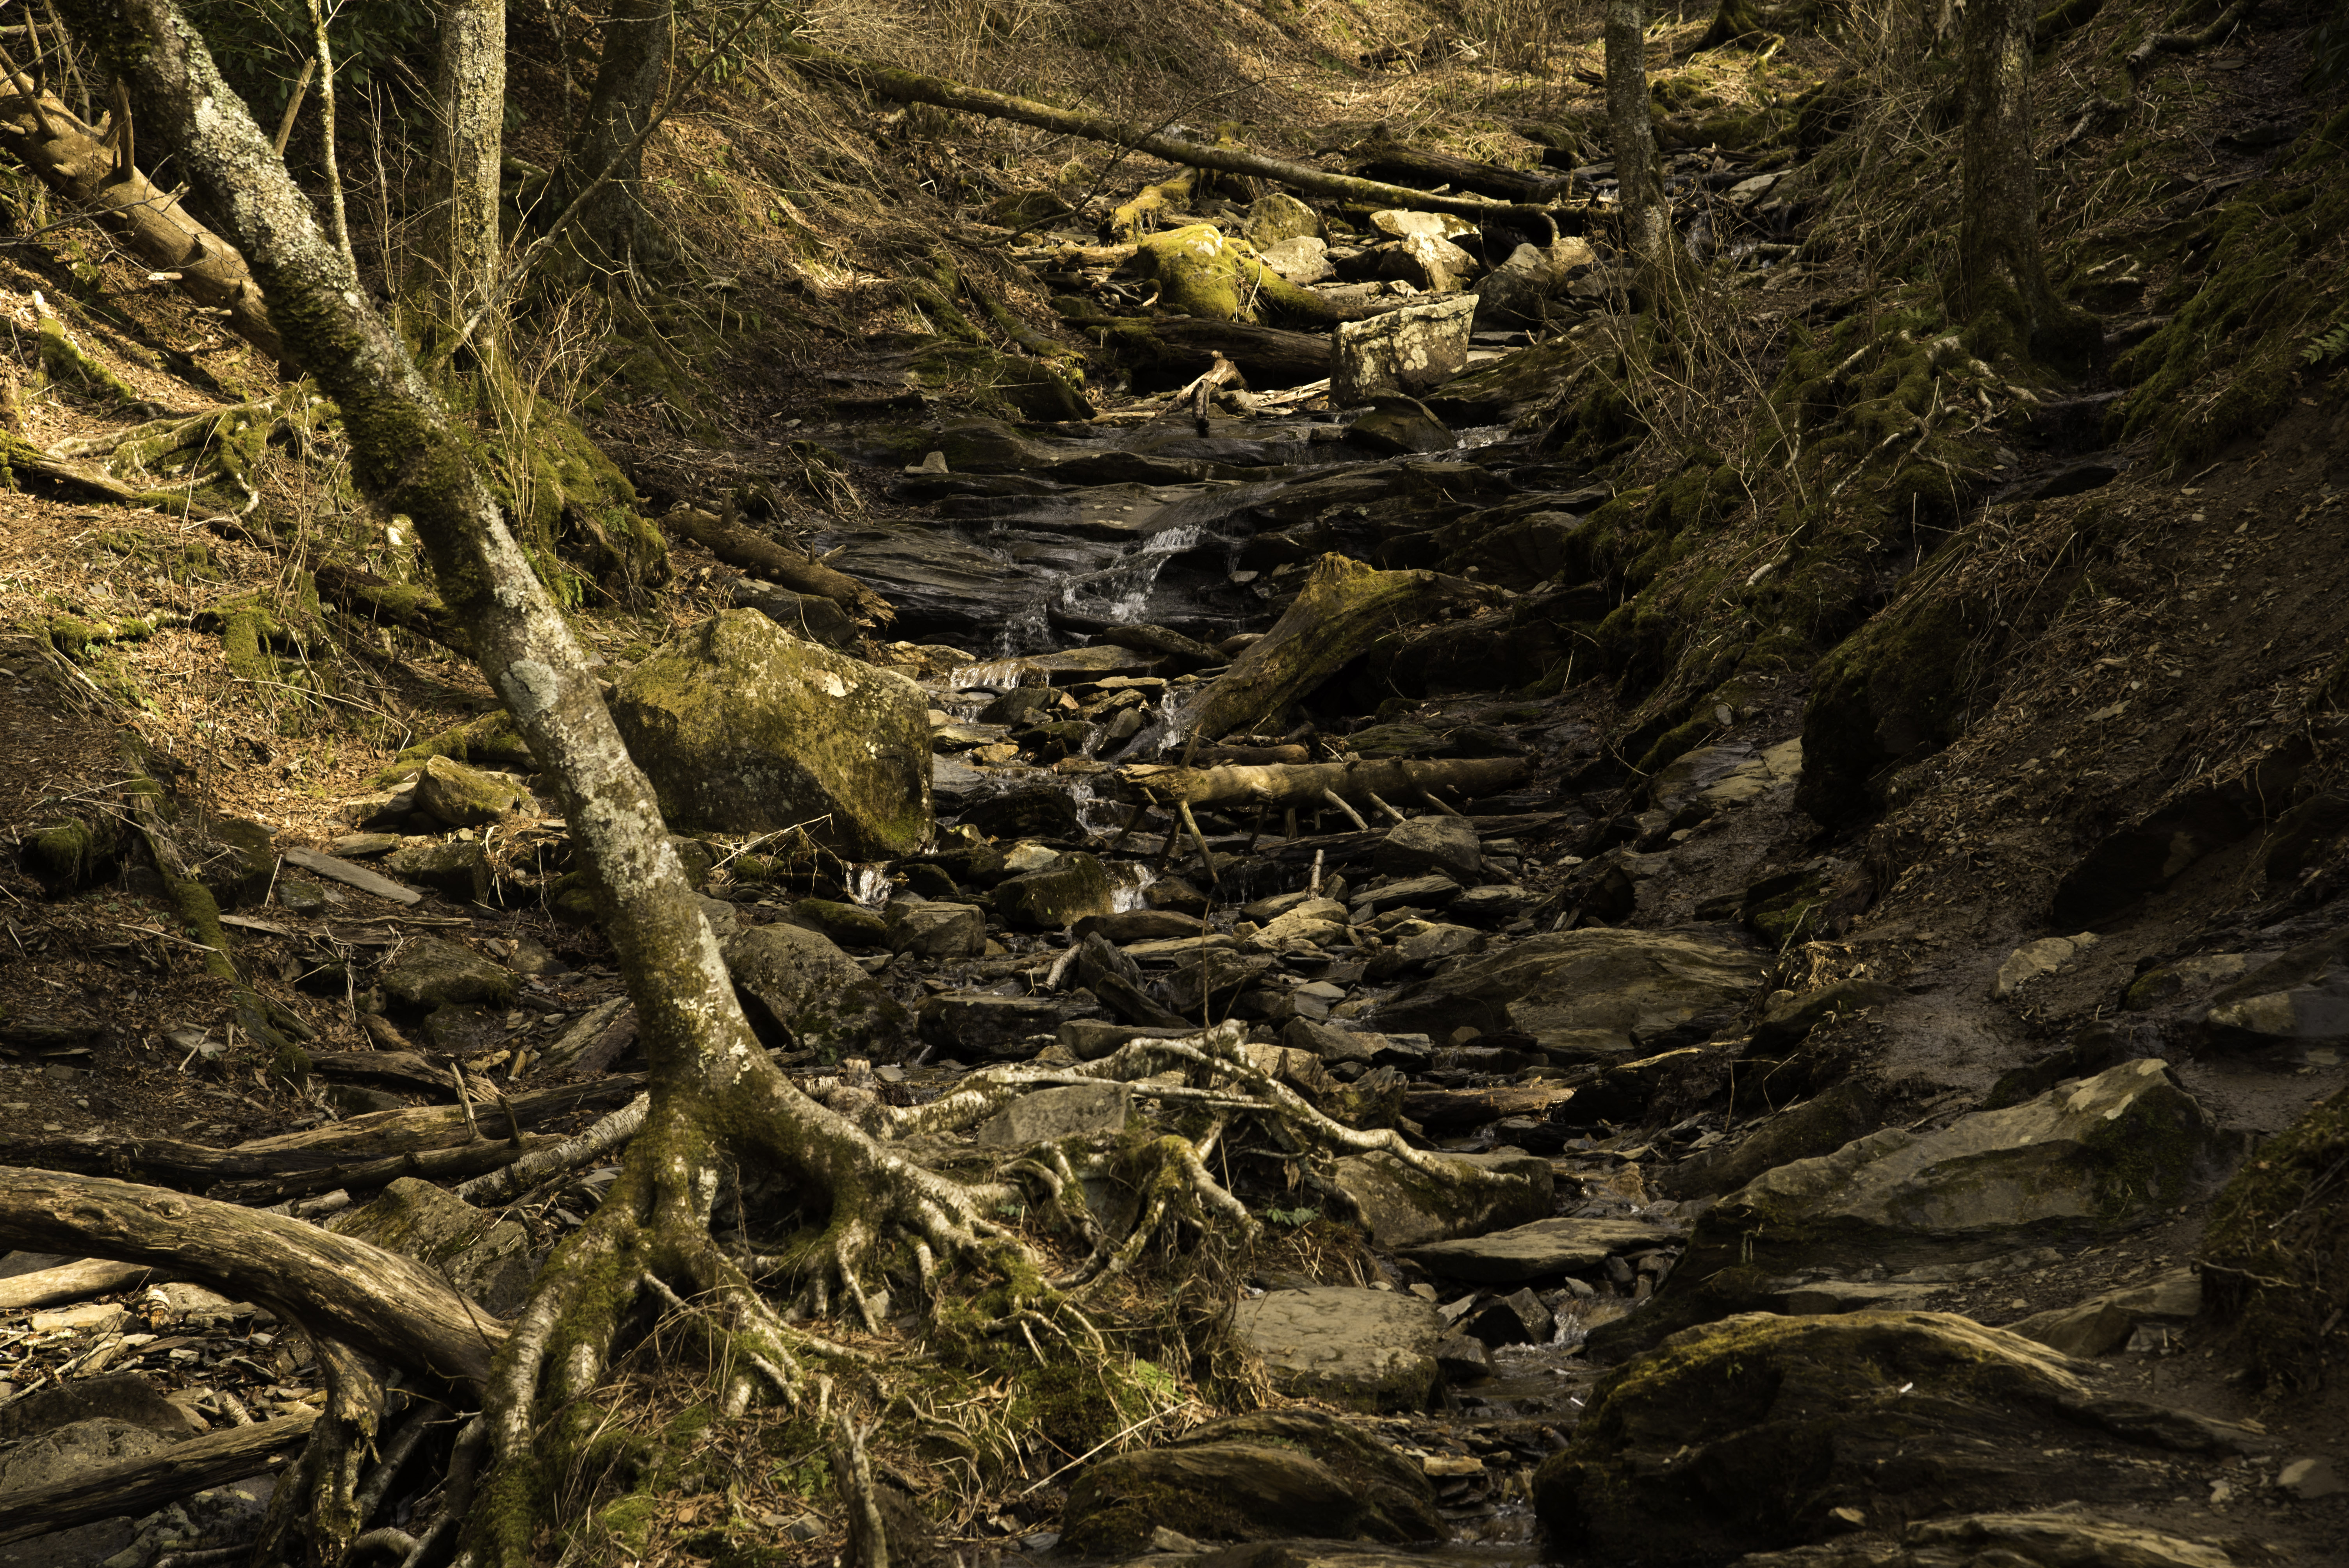 Great Smoky Mountains National Park - Free Stock Photos and public ...